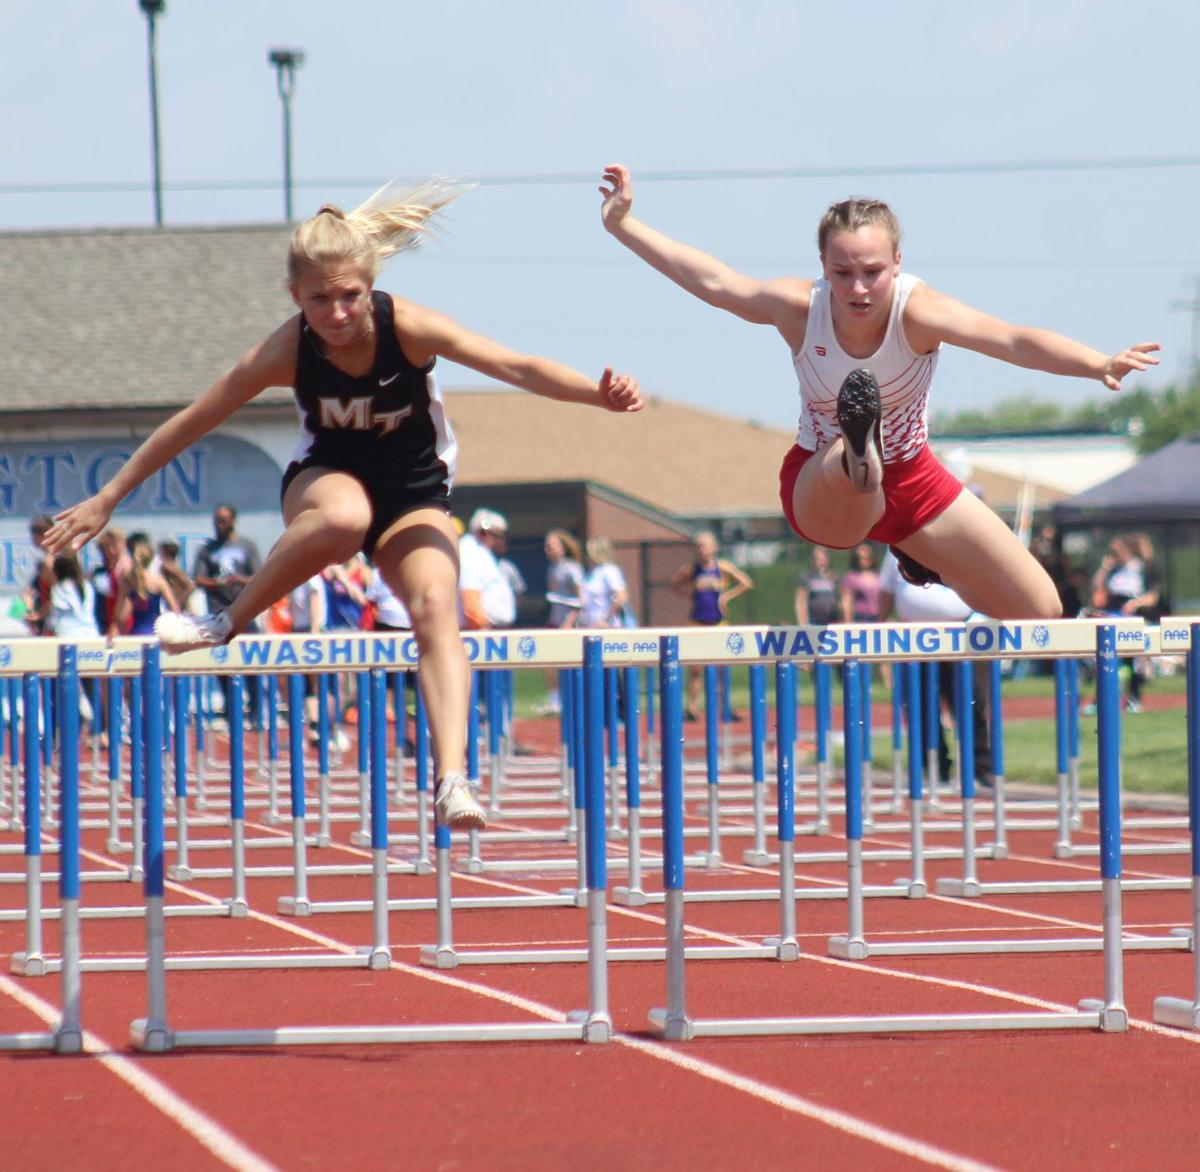 Braves take second at district meet